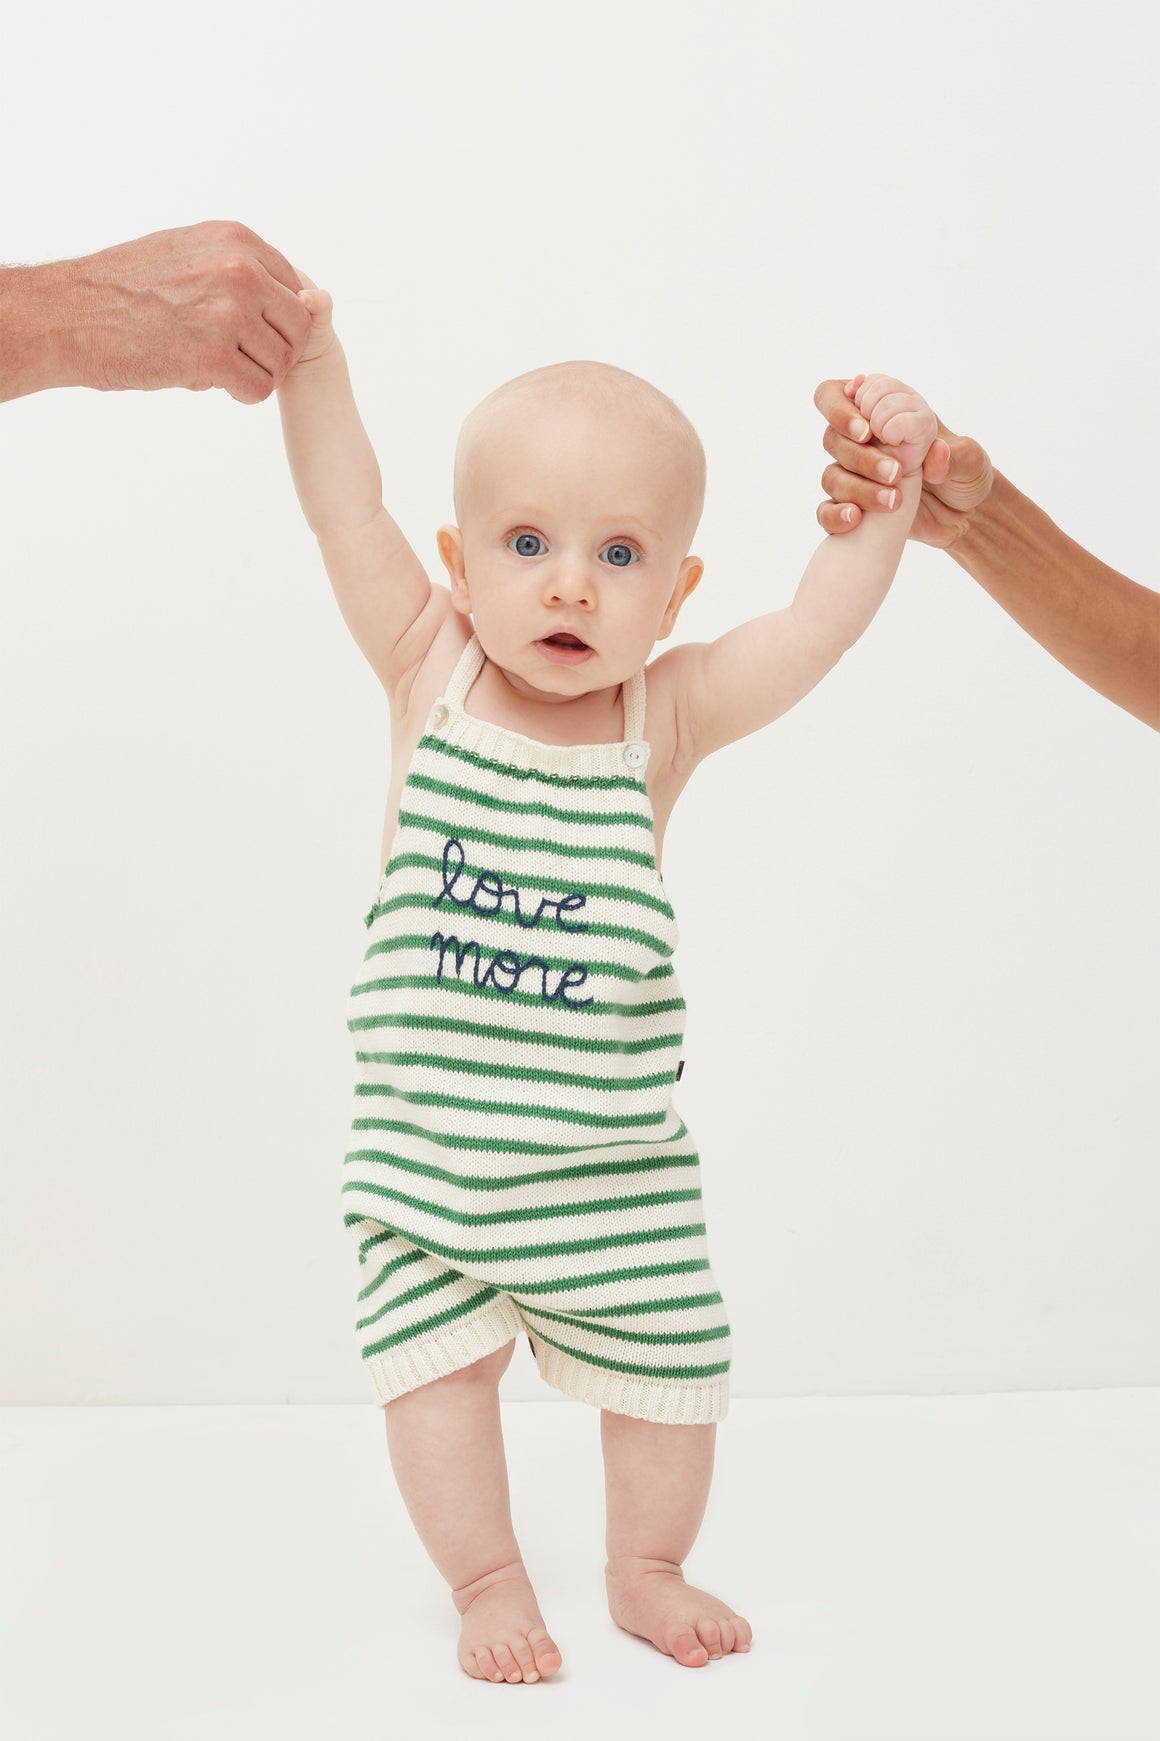 OEUF -Knit Romper - White/Green Stripes